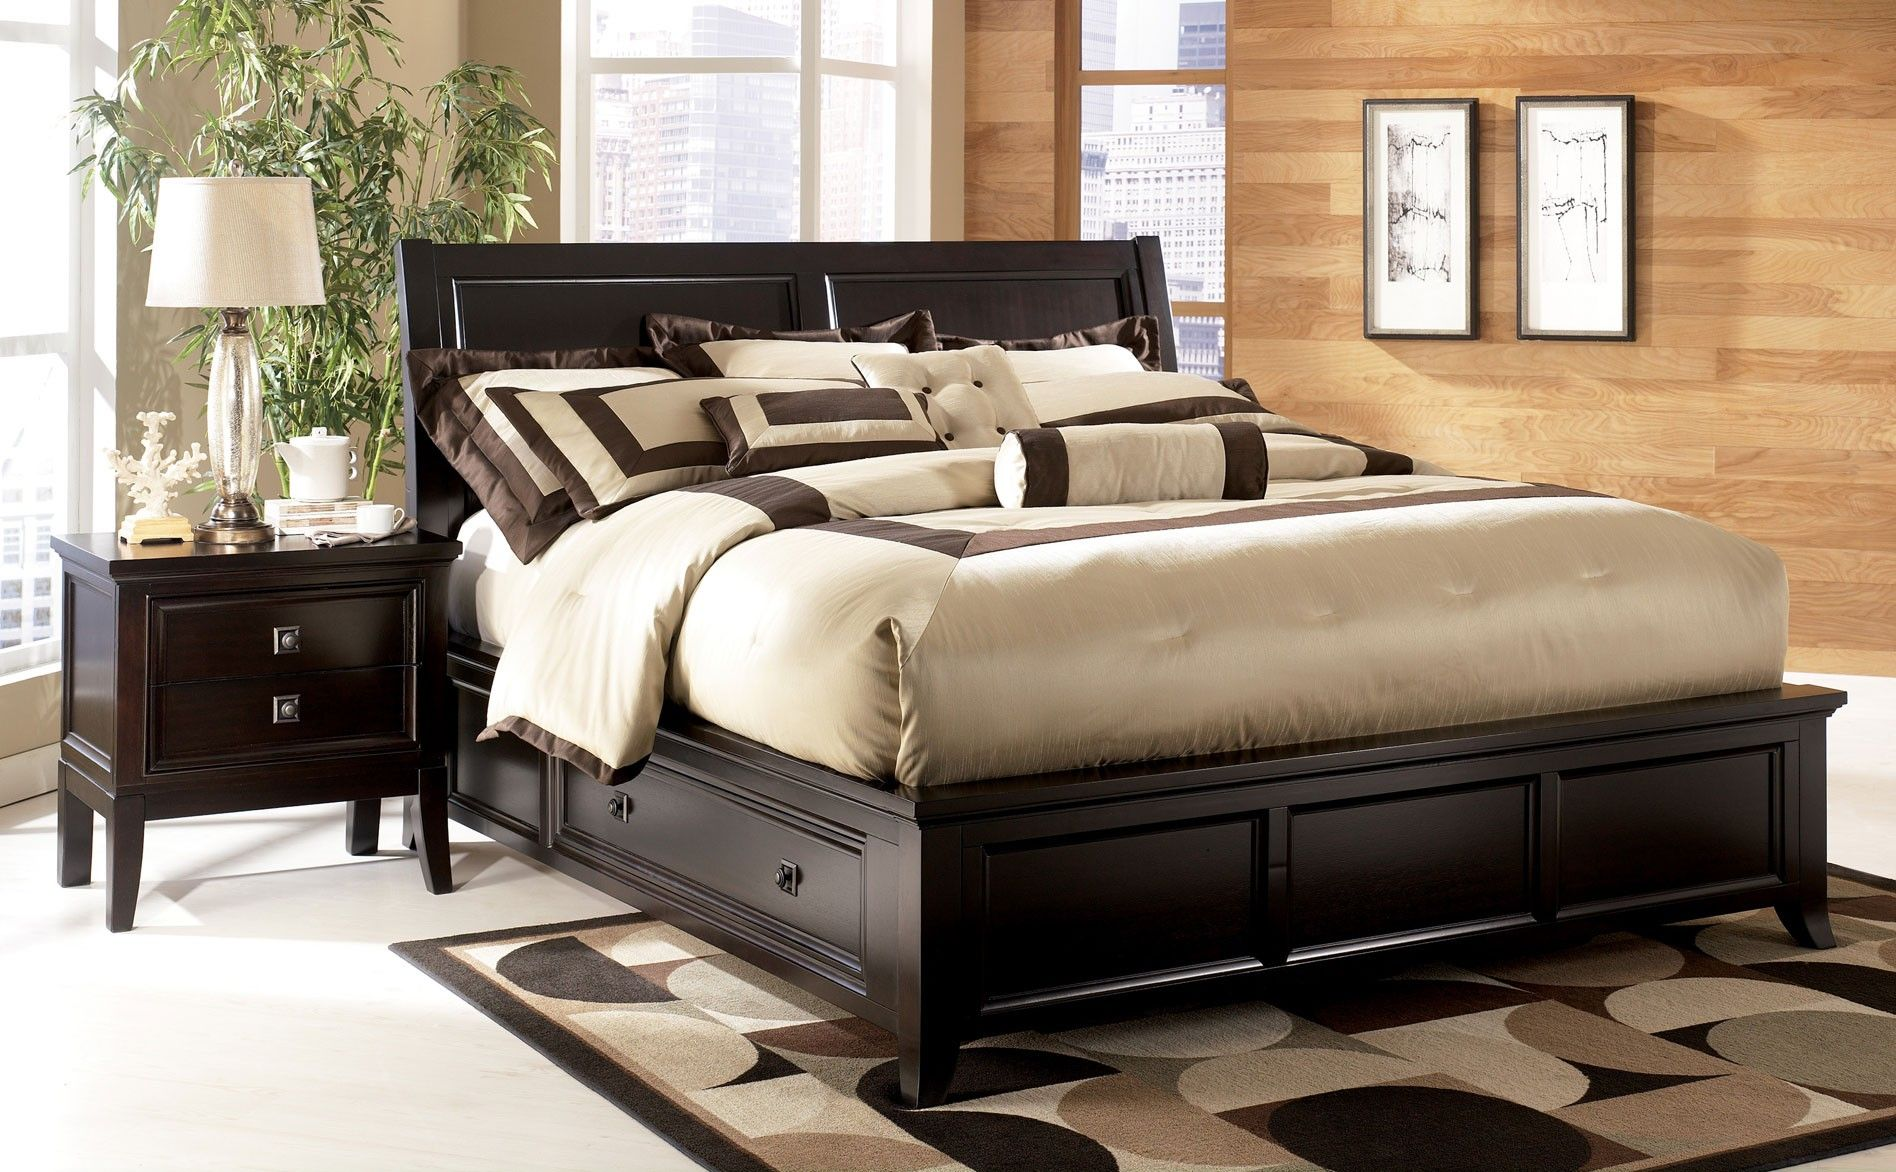 Ashley Martini King Sleigh Bed with Storage